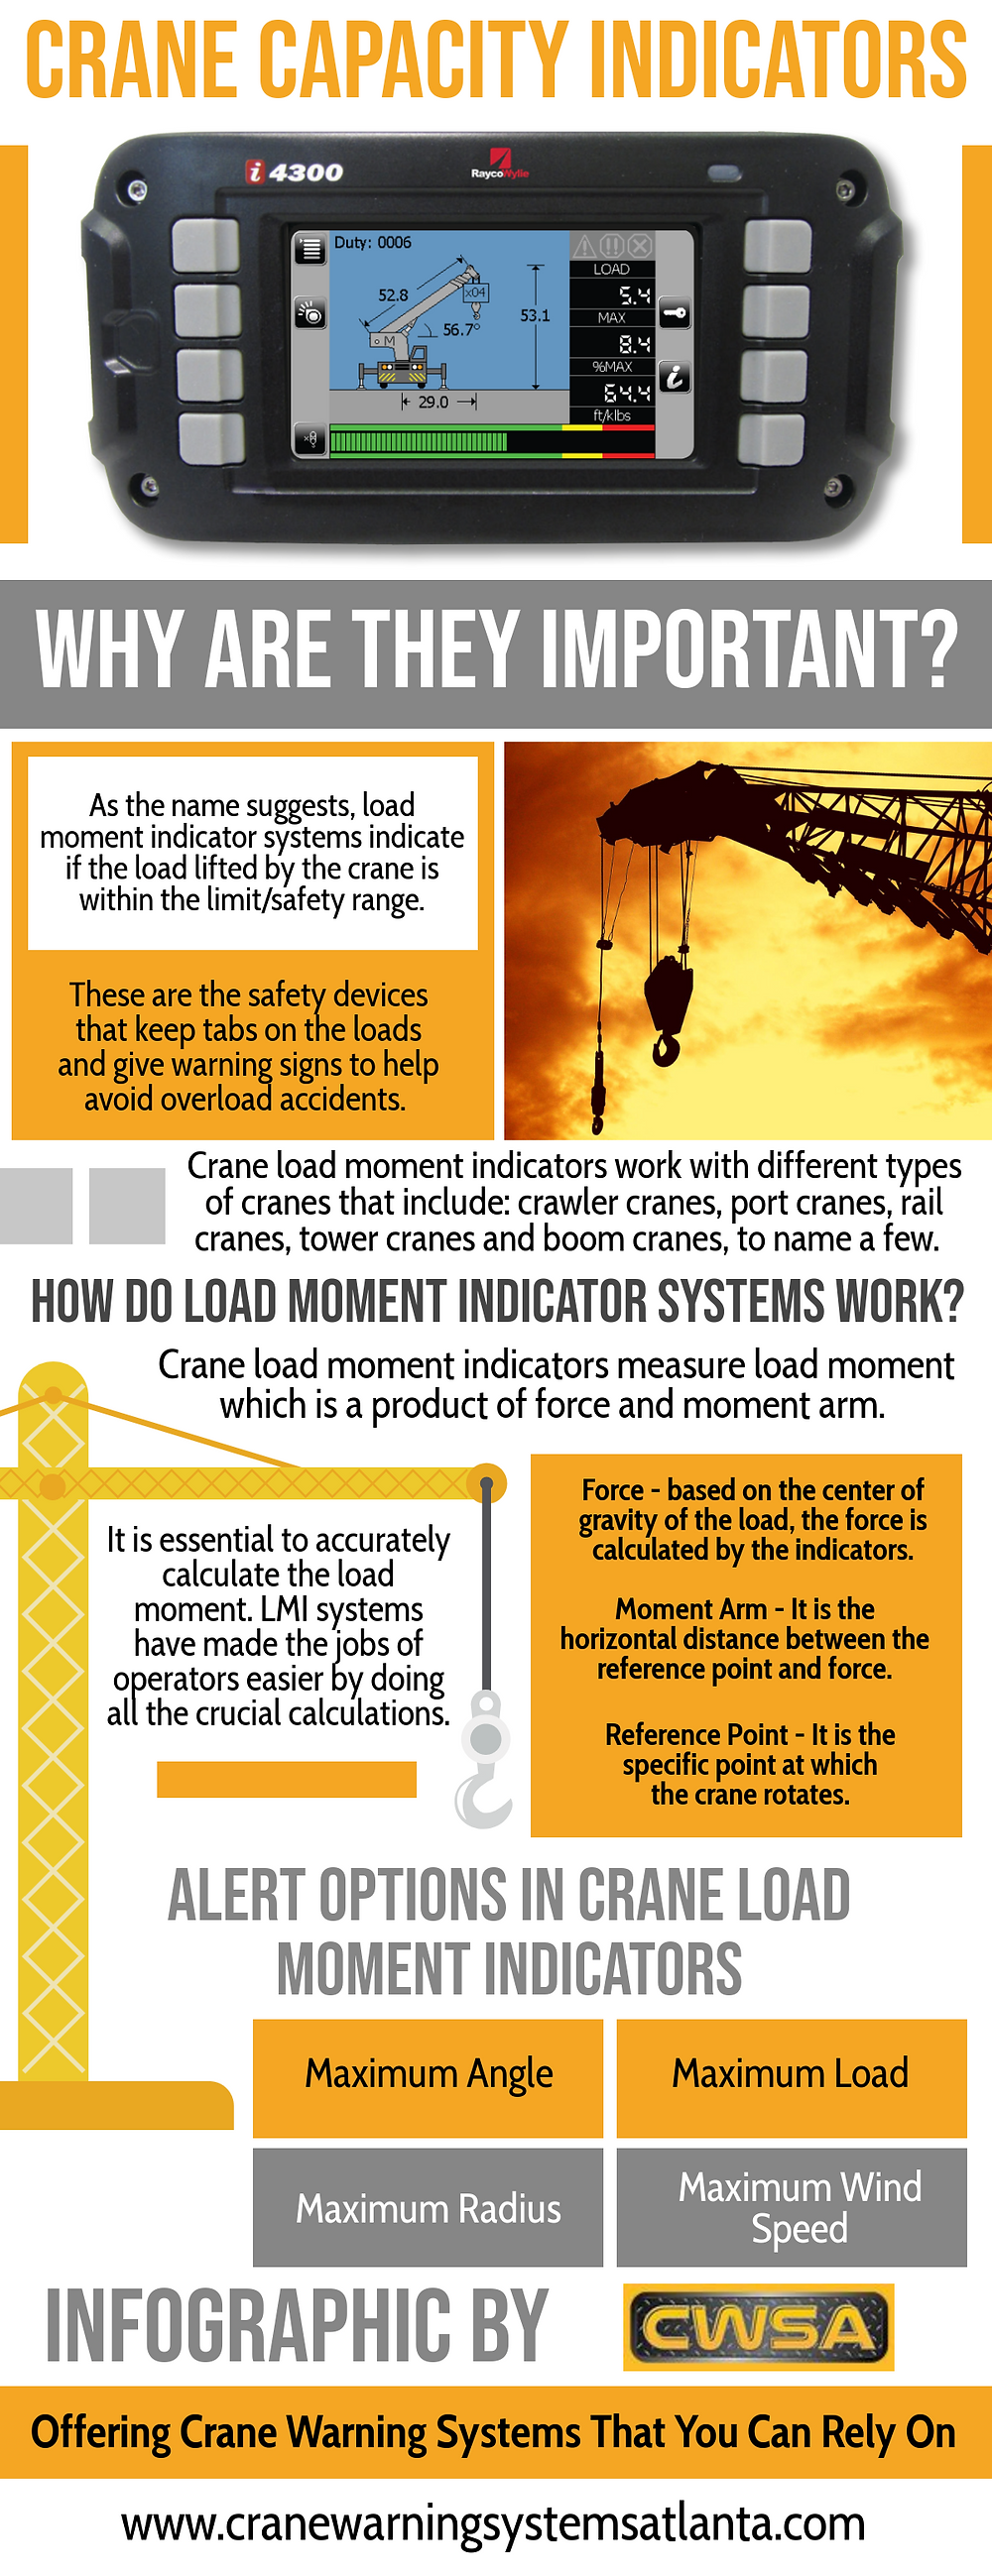 Crane Capacity Indicator. Why are they Important?